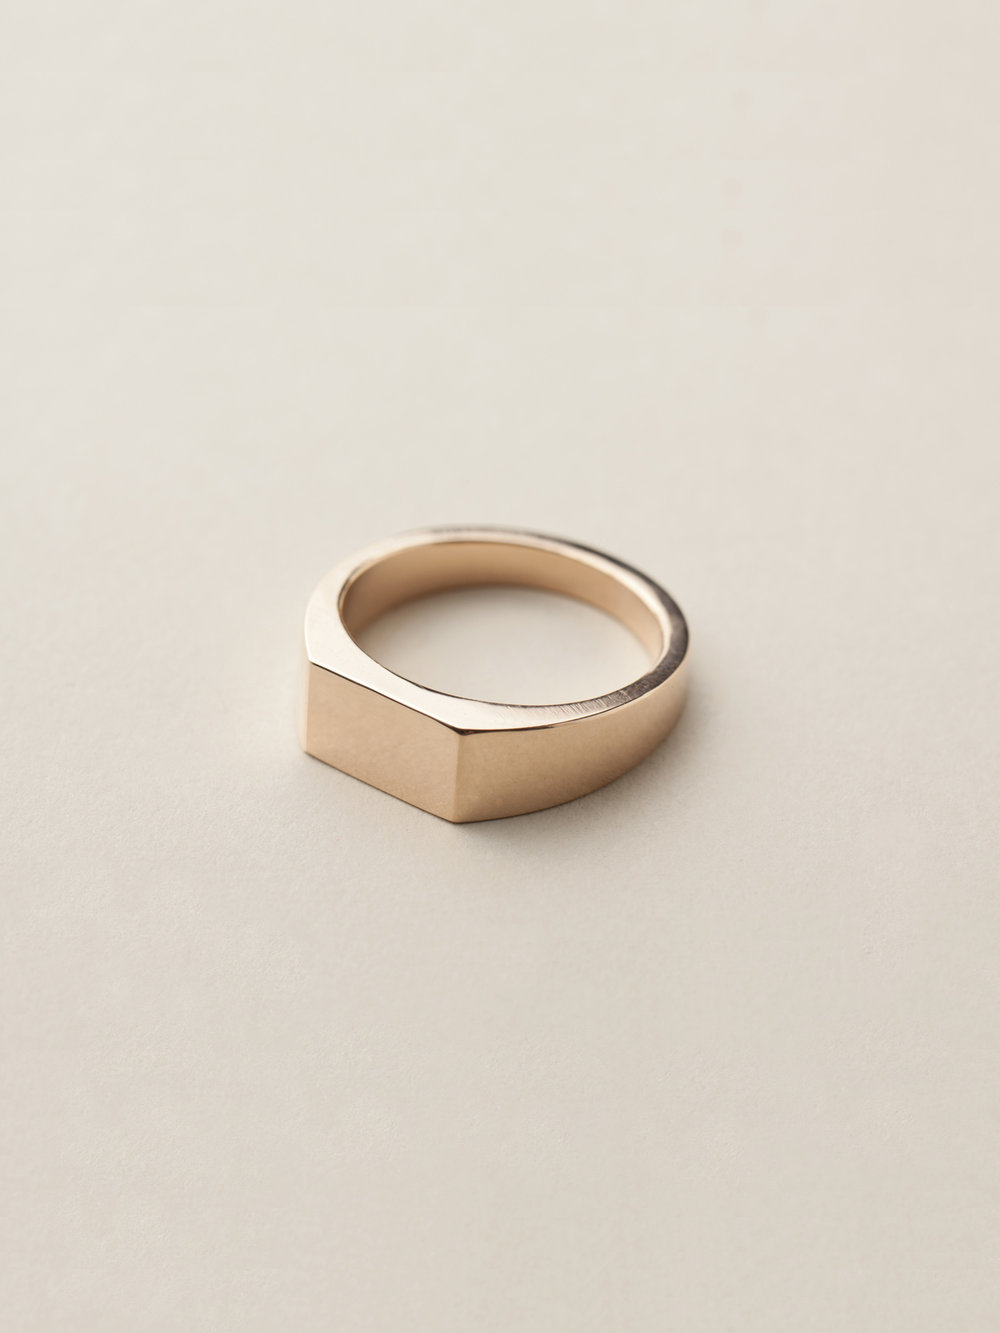 Siegelring Minima, mittel rechteckig in 585 Rosegold  Signet ring Minima, medium rectangle in 14ct rose gold